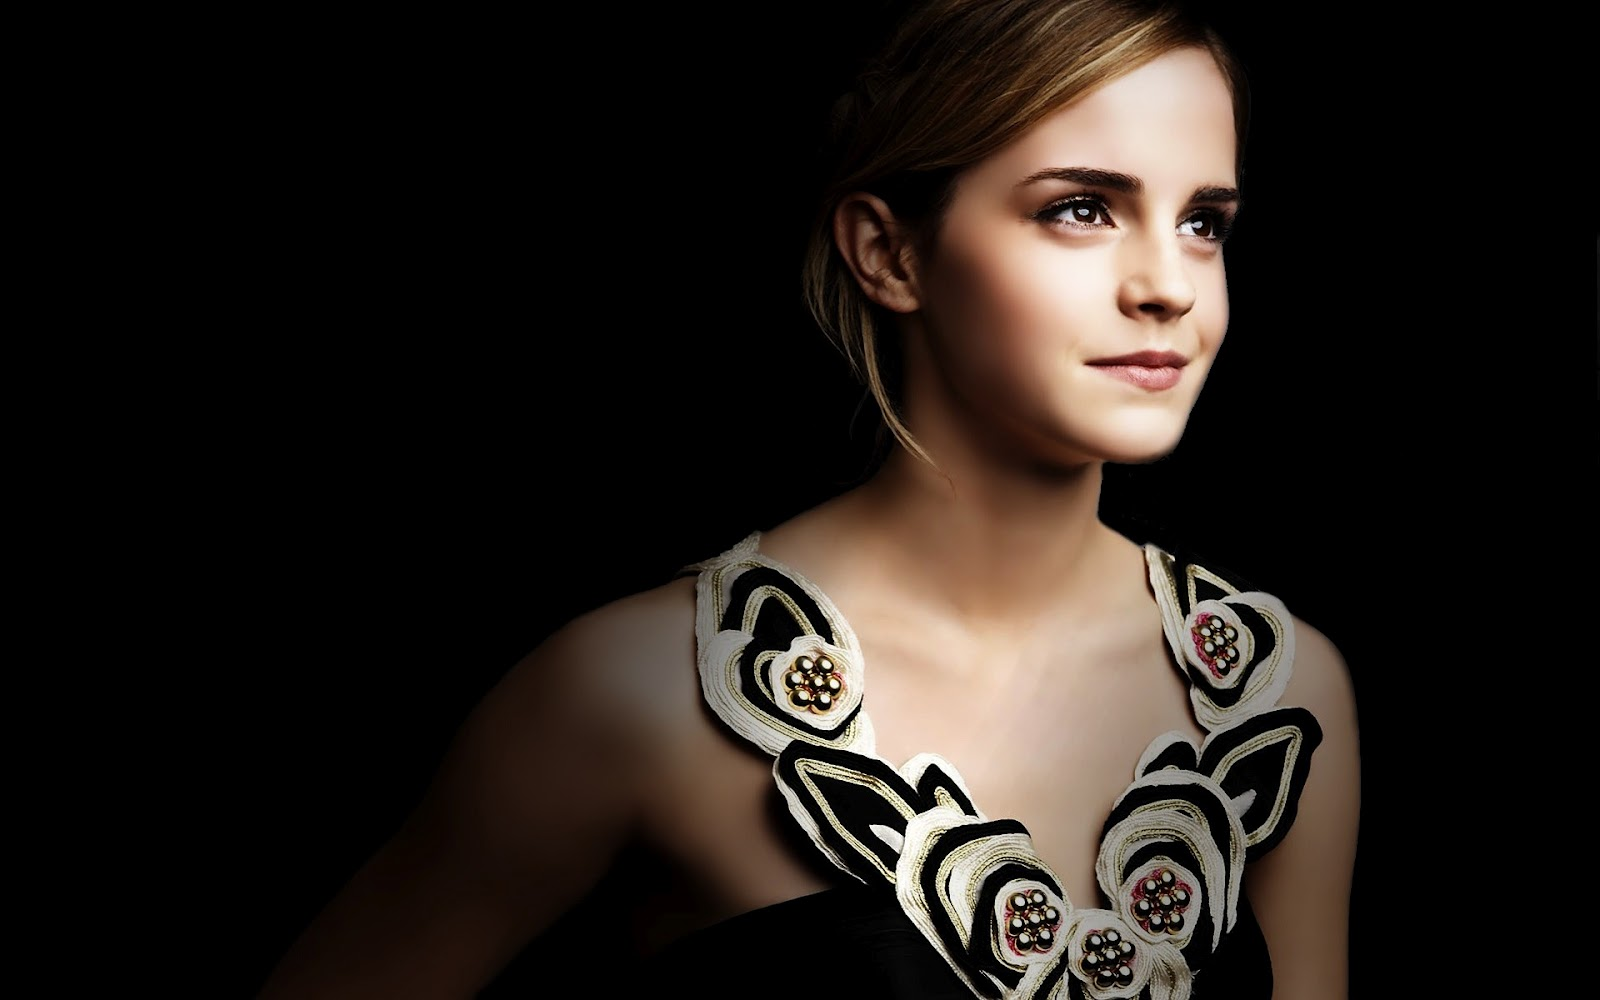 Hollywood Celebrities: Emma Watson Hot Pictures Gallery 2012